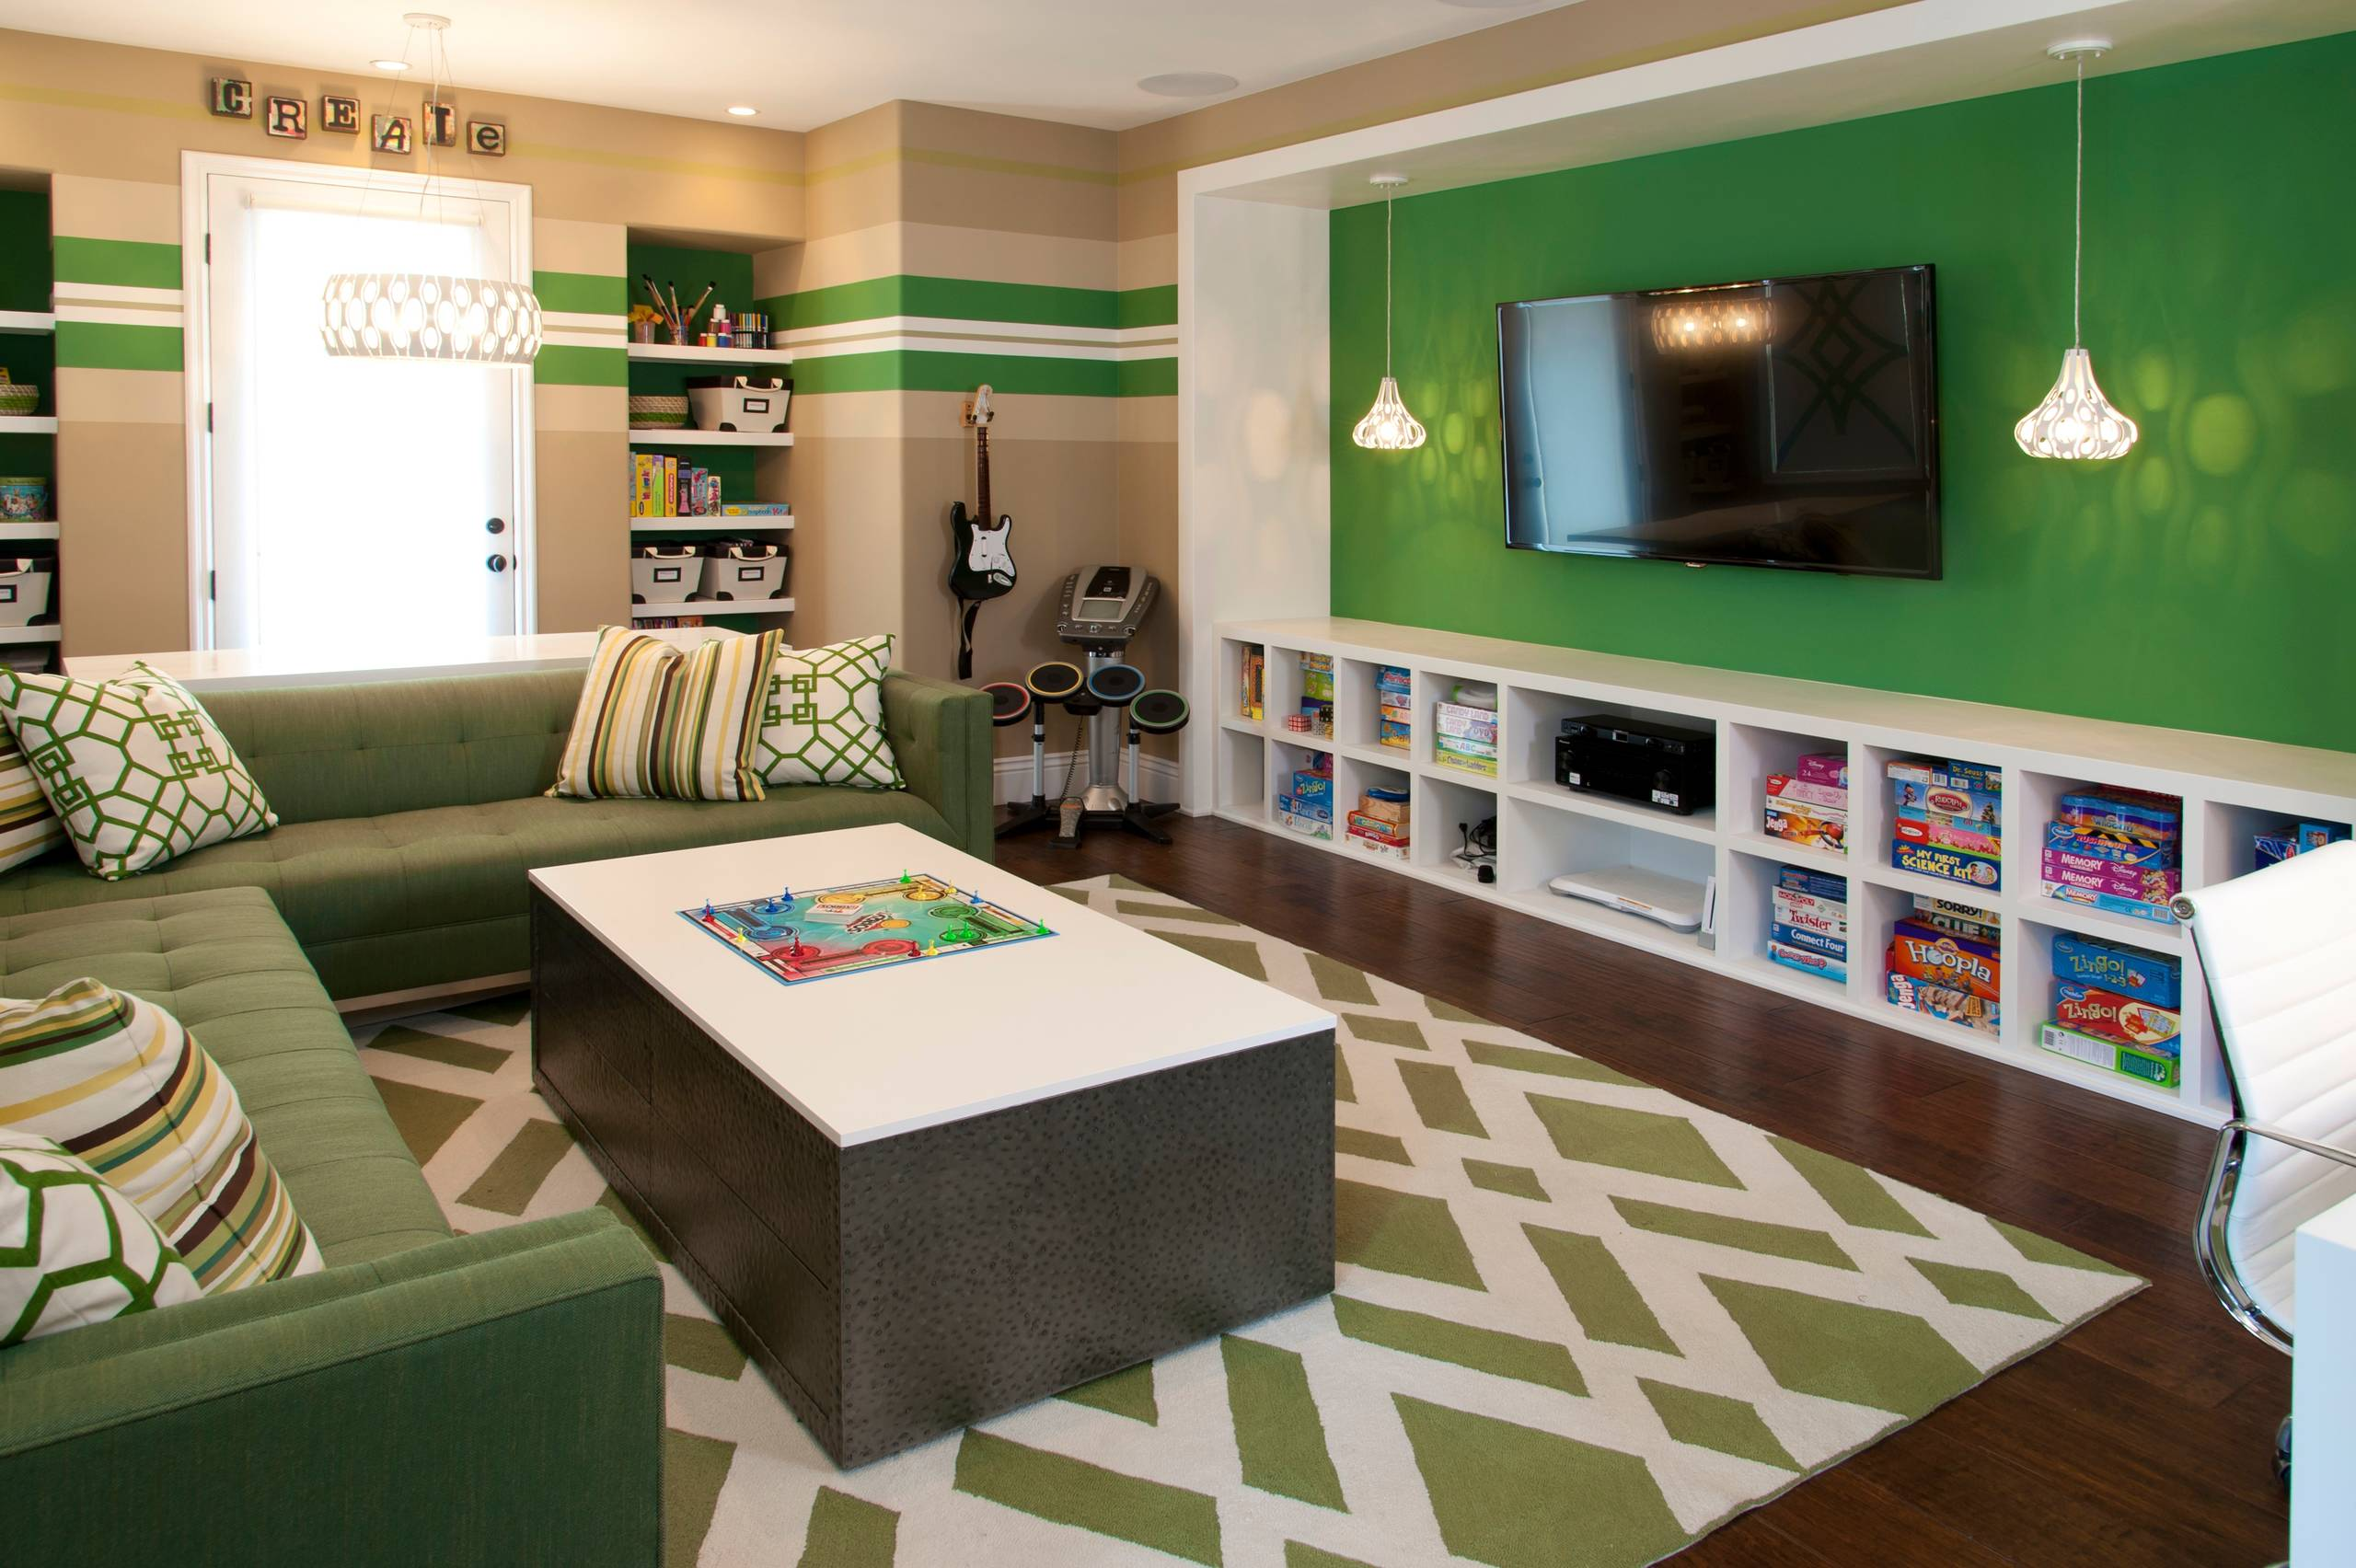 75 Beautiful Contemporary Playroom Pictures Ideas December 2020 Houzz